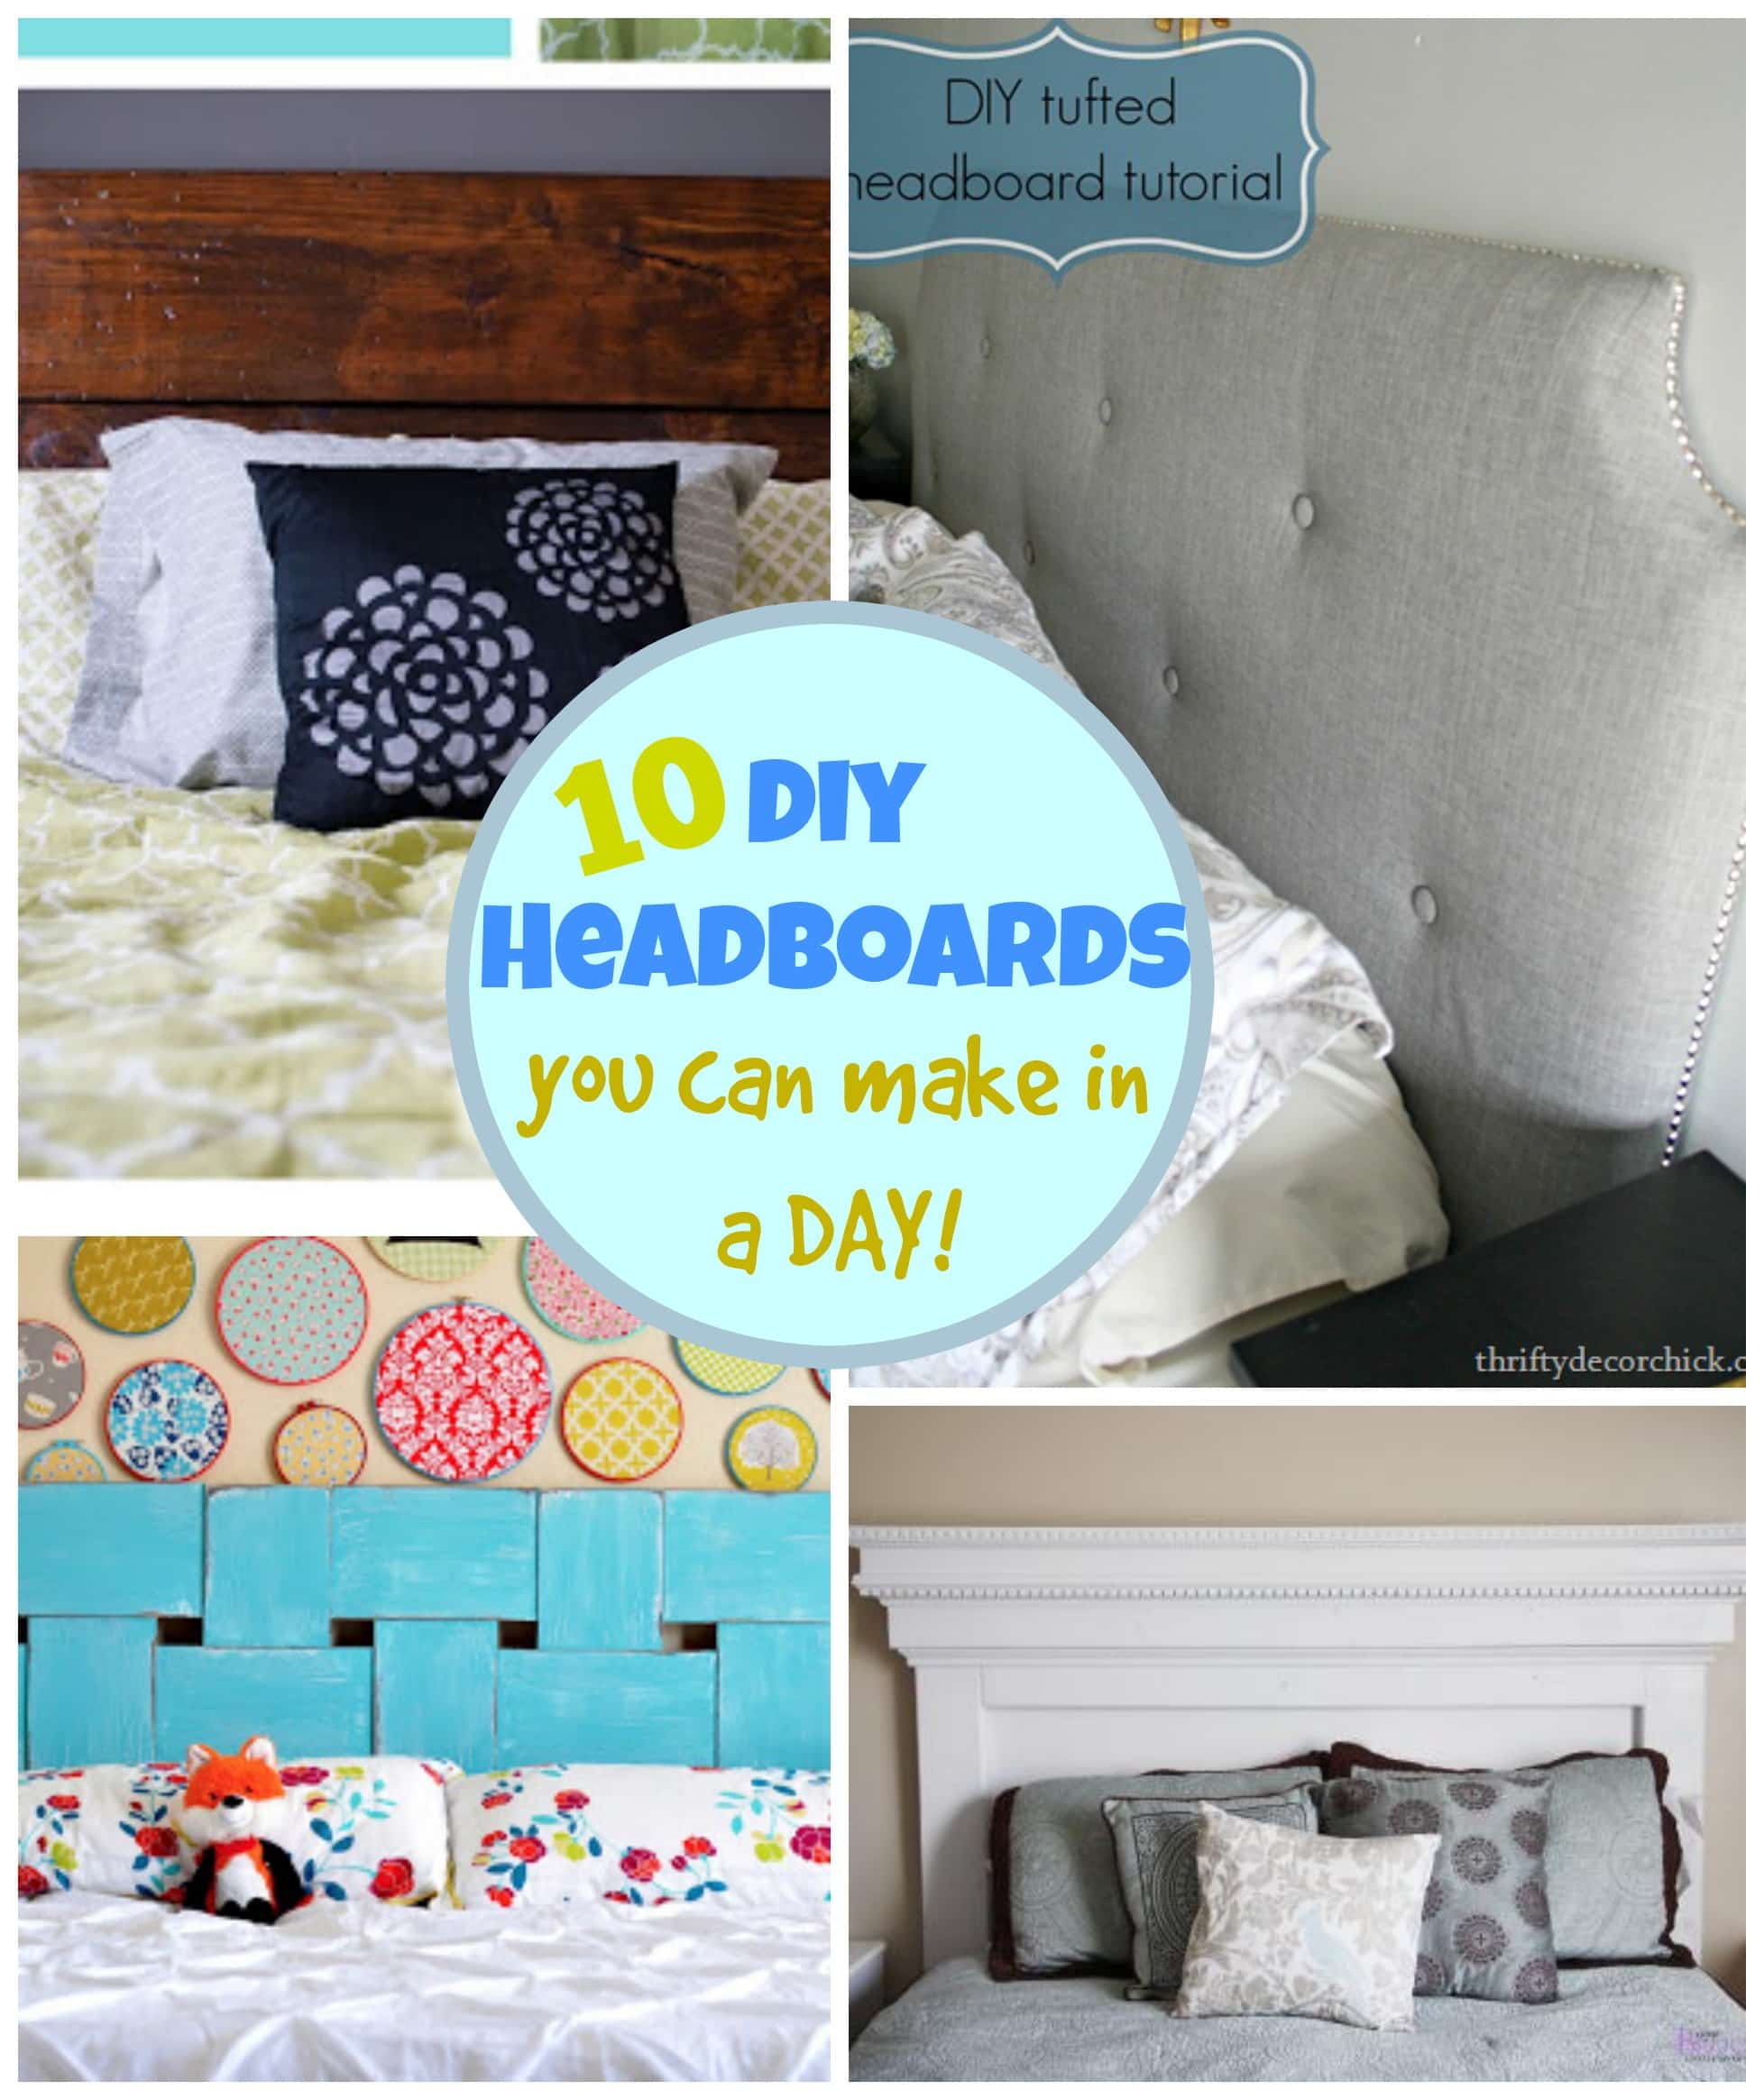 A great list of 10 DIY Headboards You Can Make In A DAY!